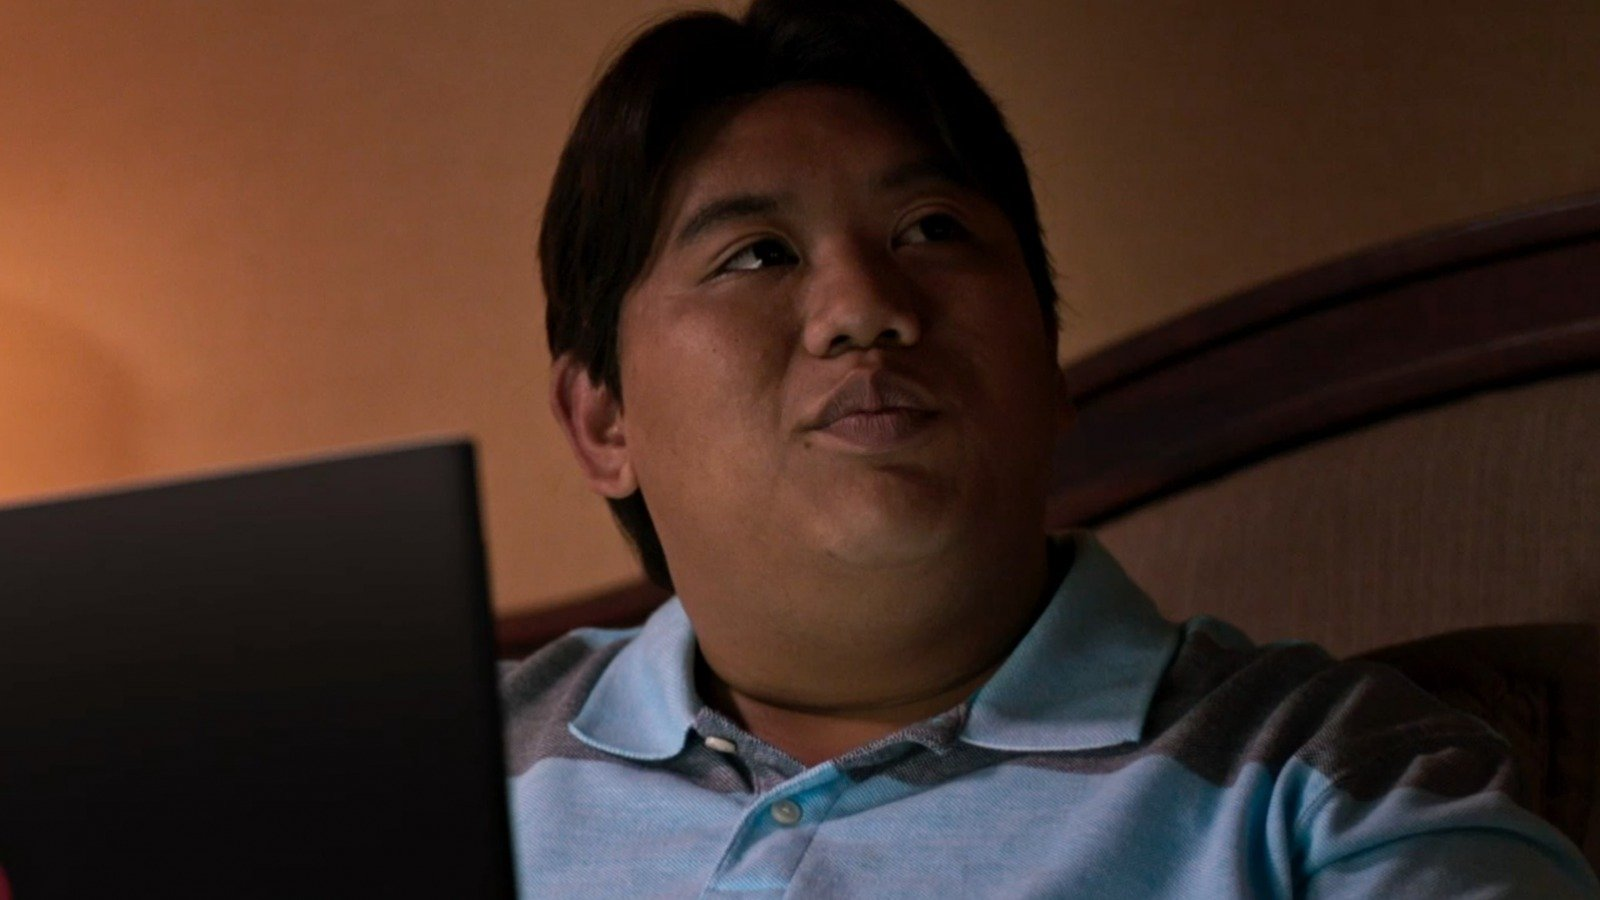 The Spider-Man Actor Who Plays Ned Leeds Lost Weight And Got Totally Ripped